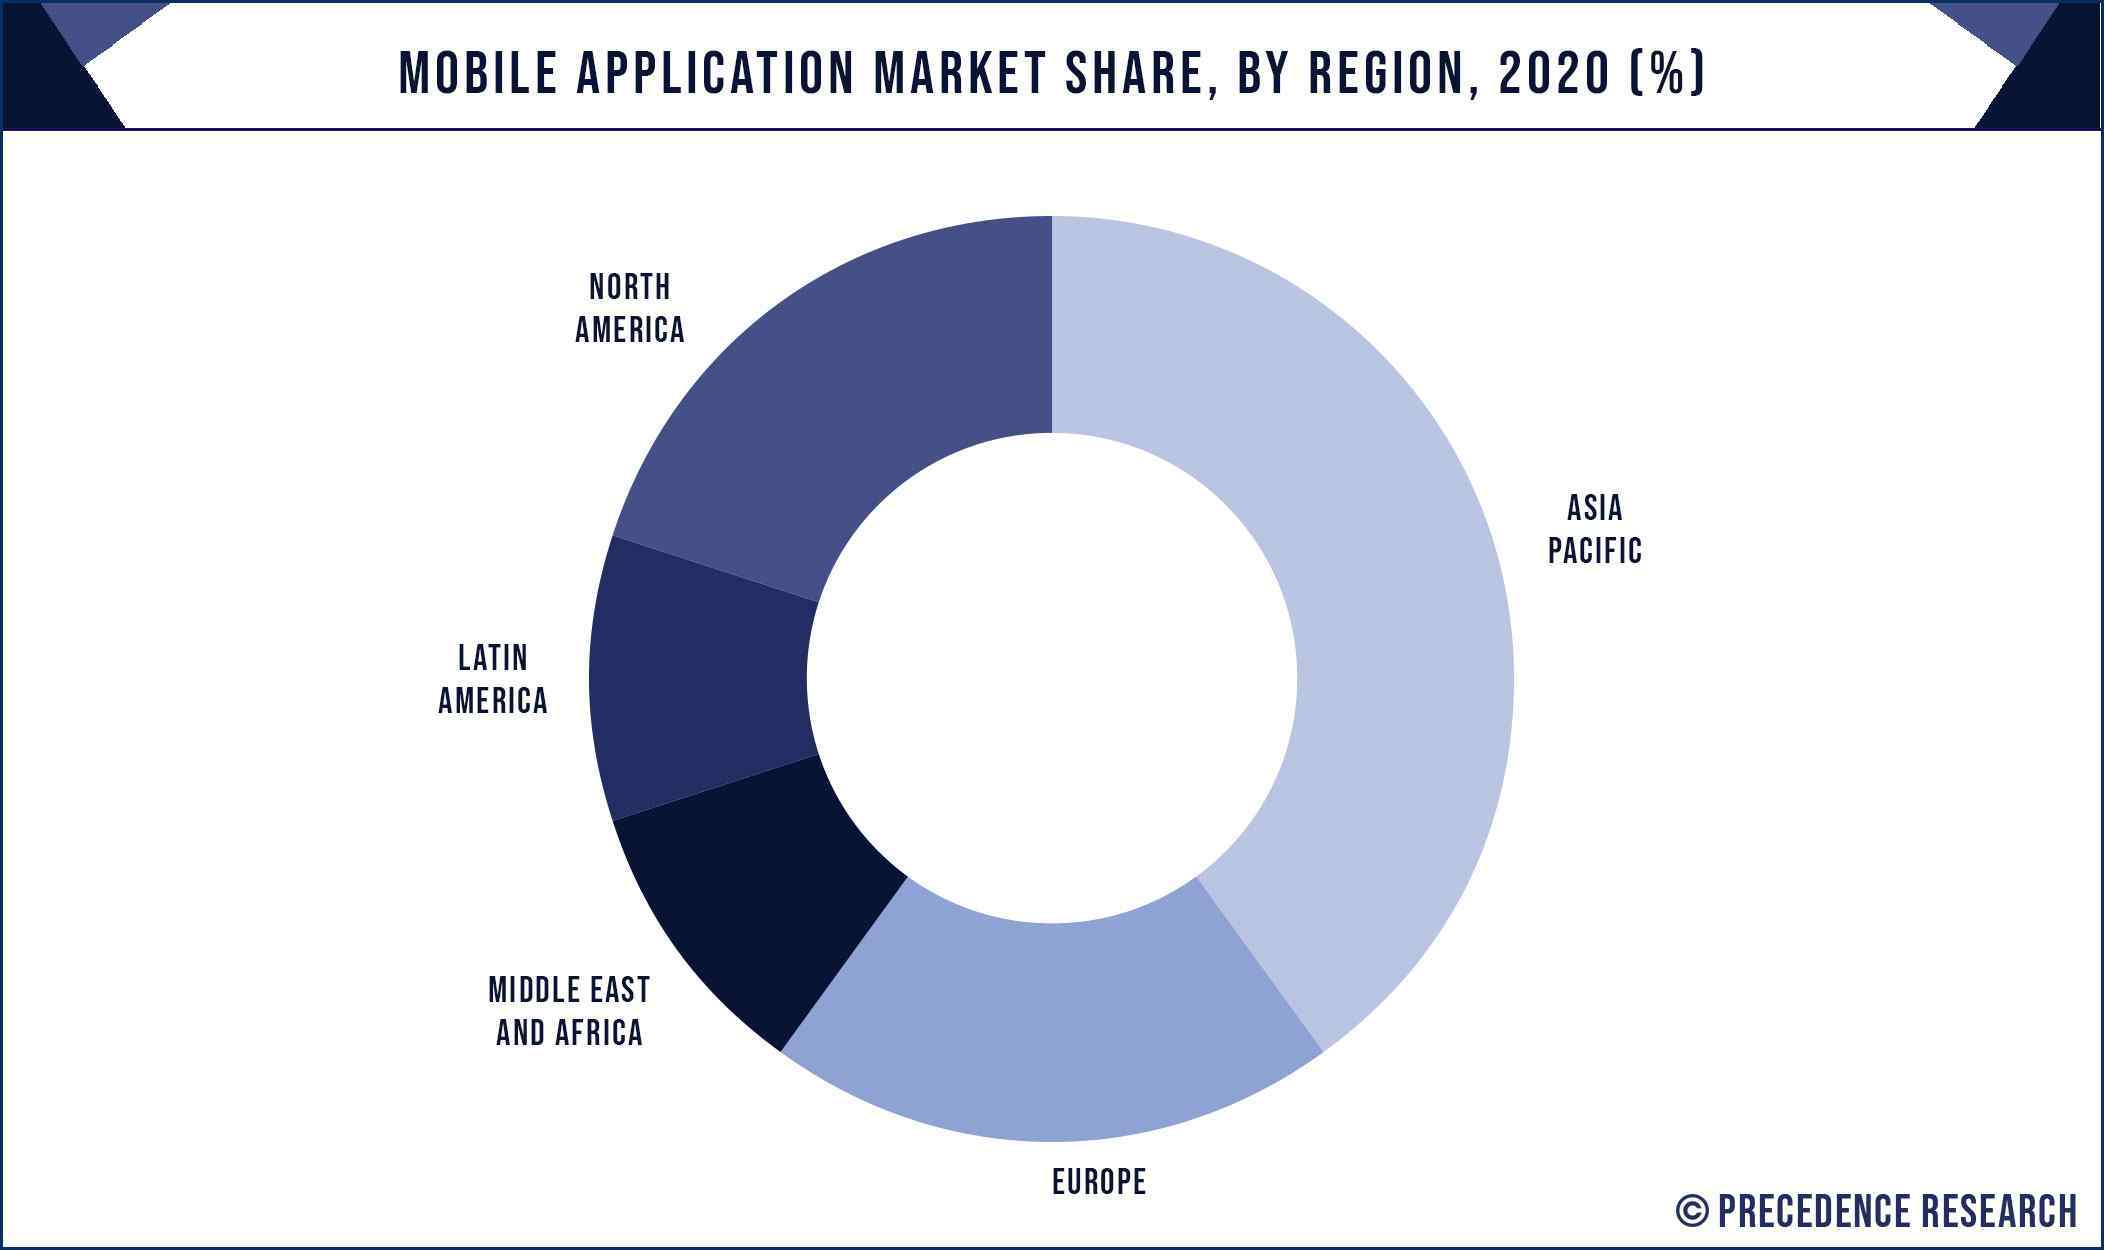 Mobile Application Market Share, By Region, 2020 (%)